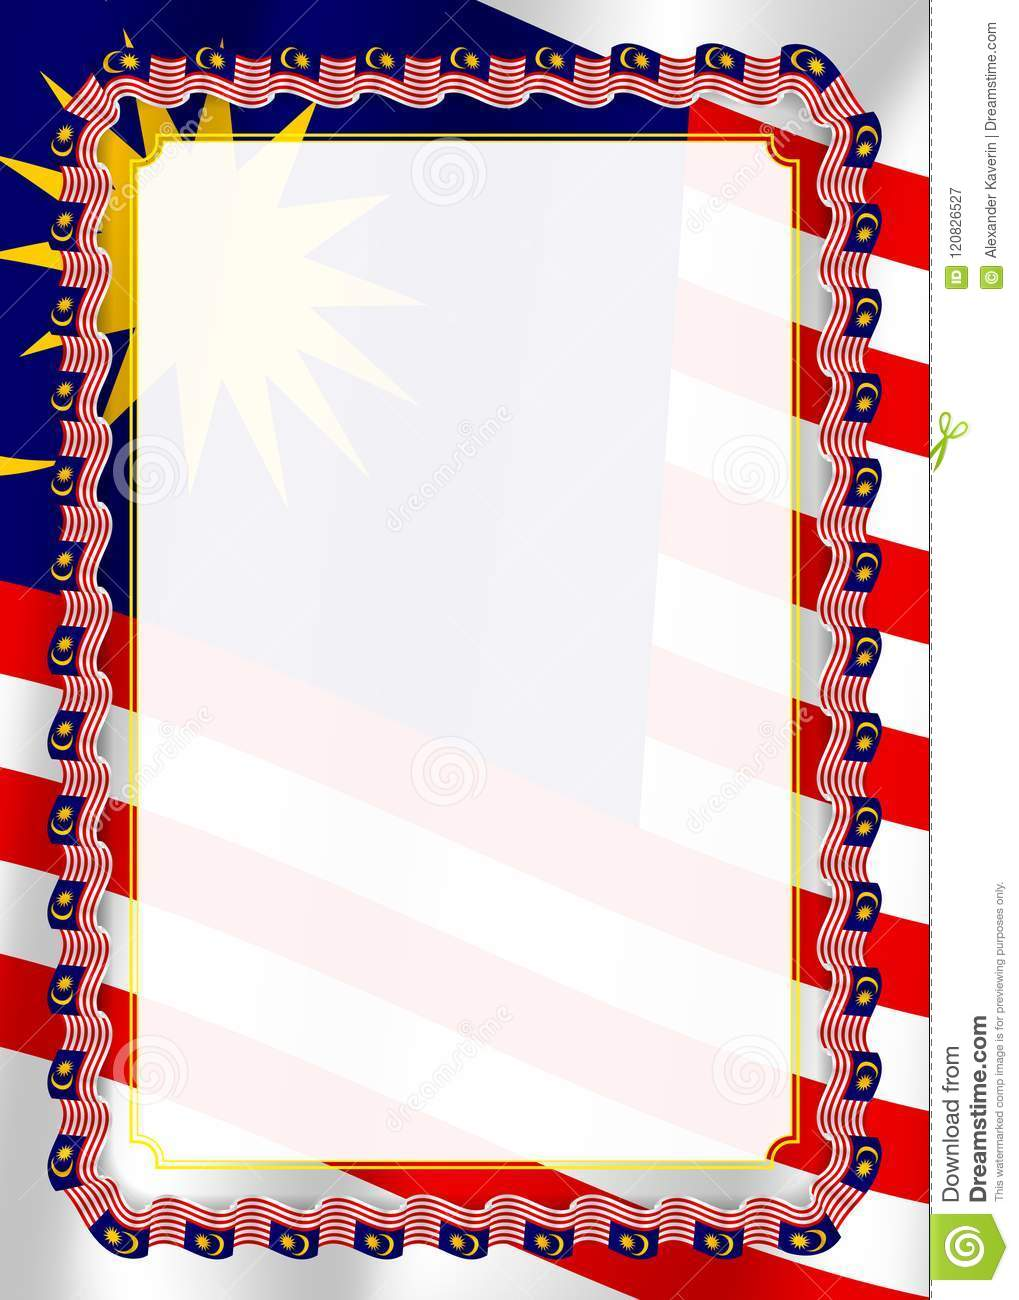 frame and border of ribbon with malaysia flag template elements for